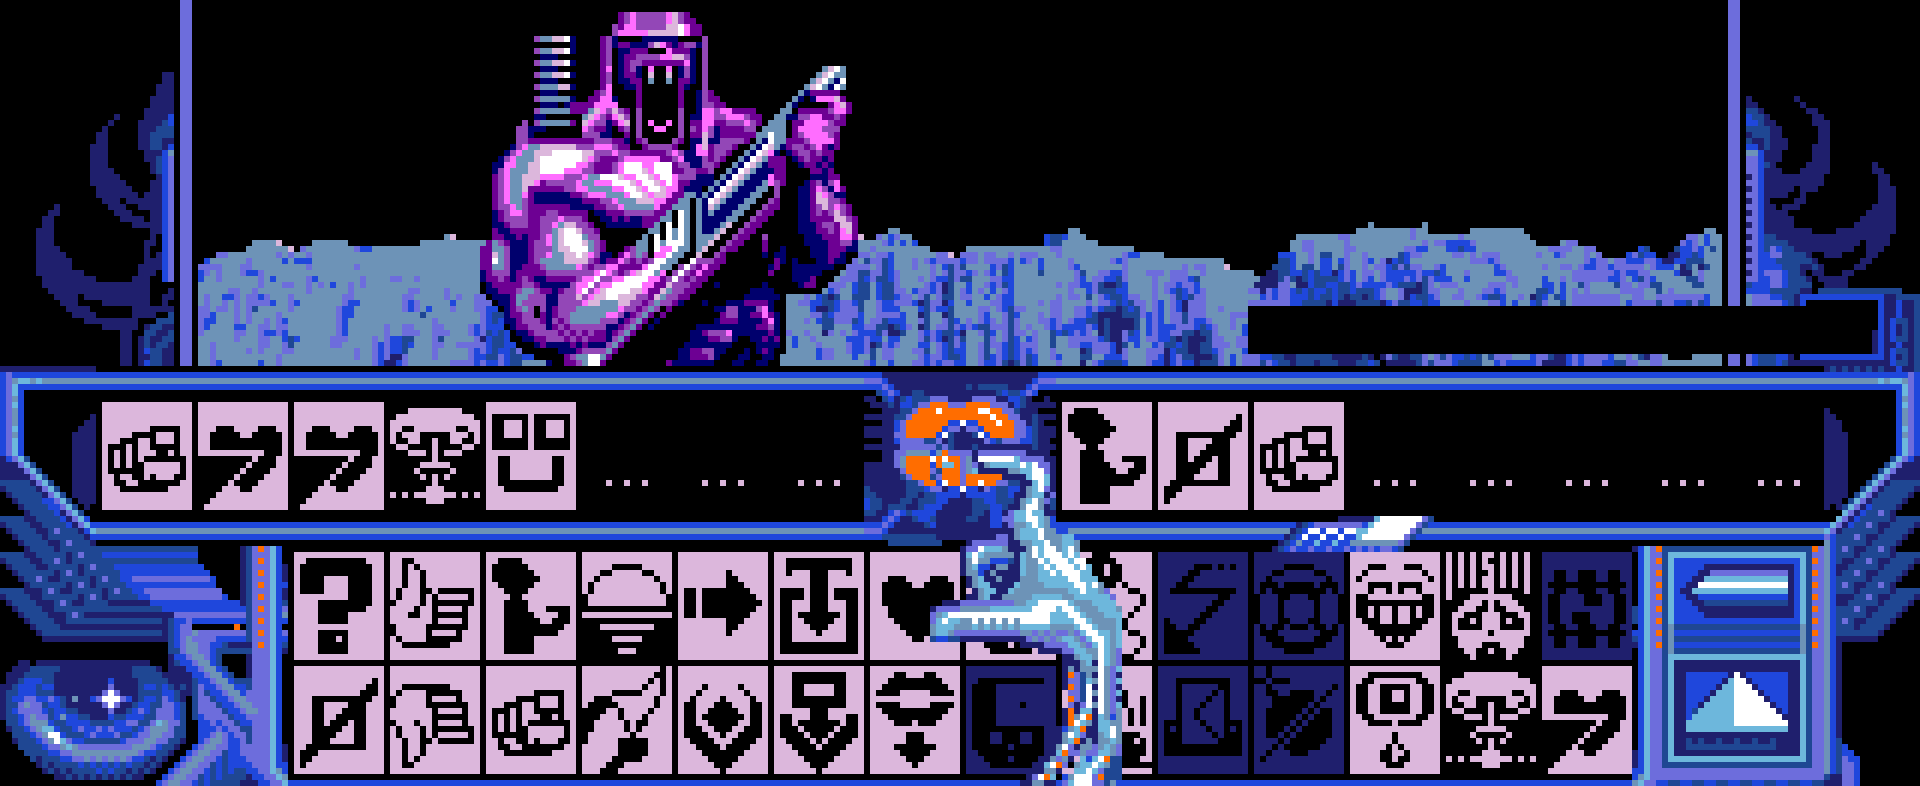 Captain Blood (1988, Atari ST) - GameTripper retrospective